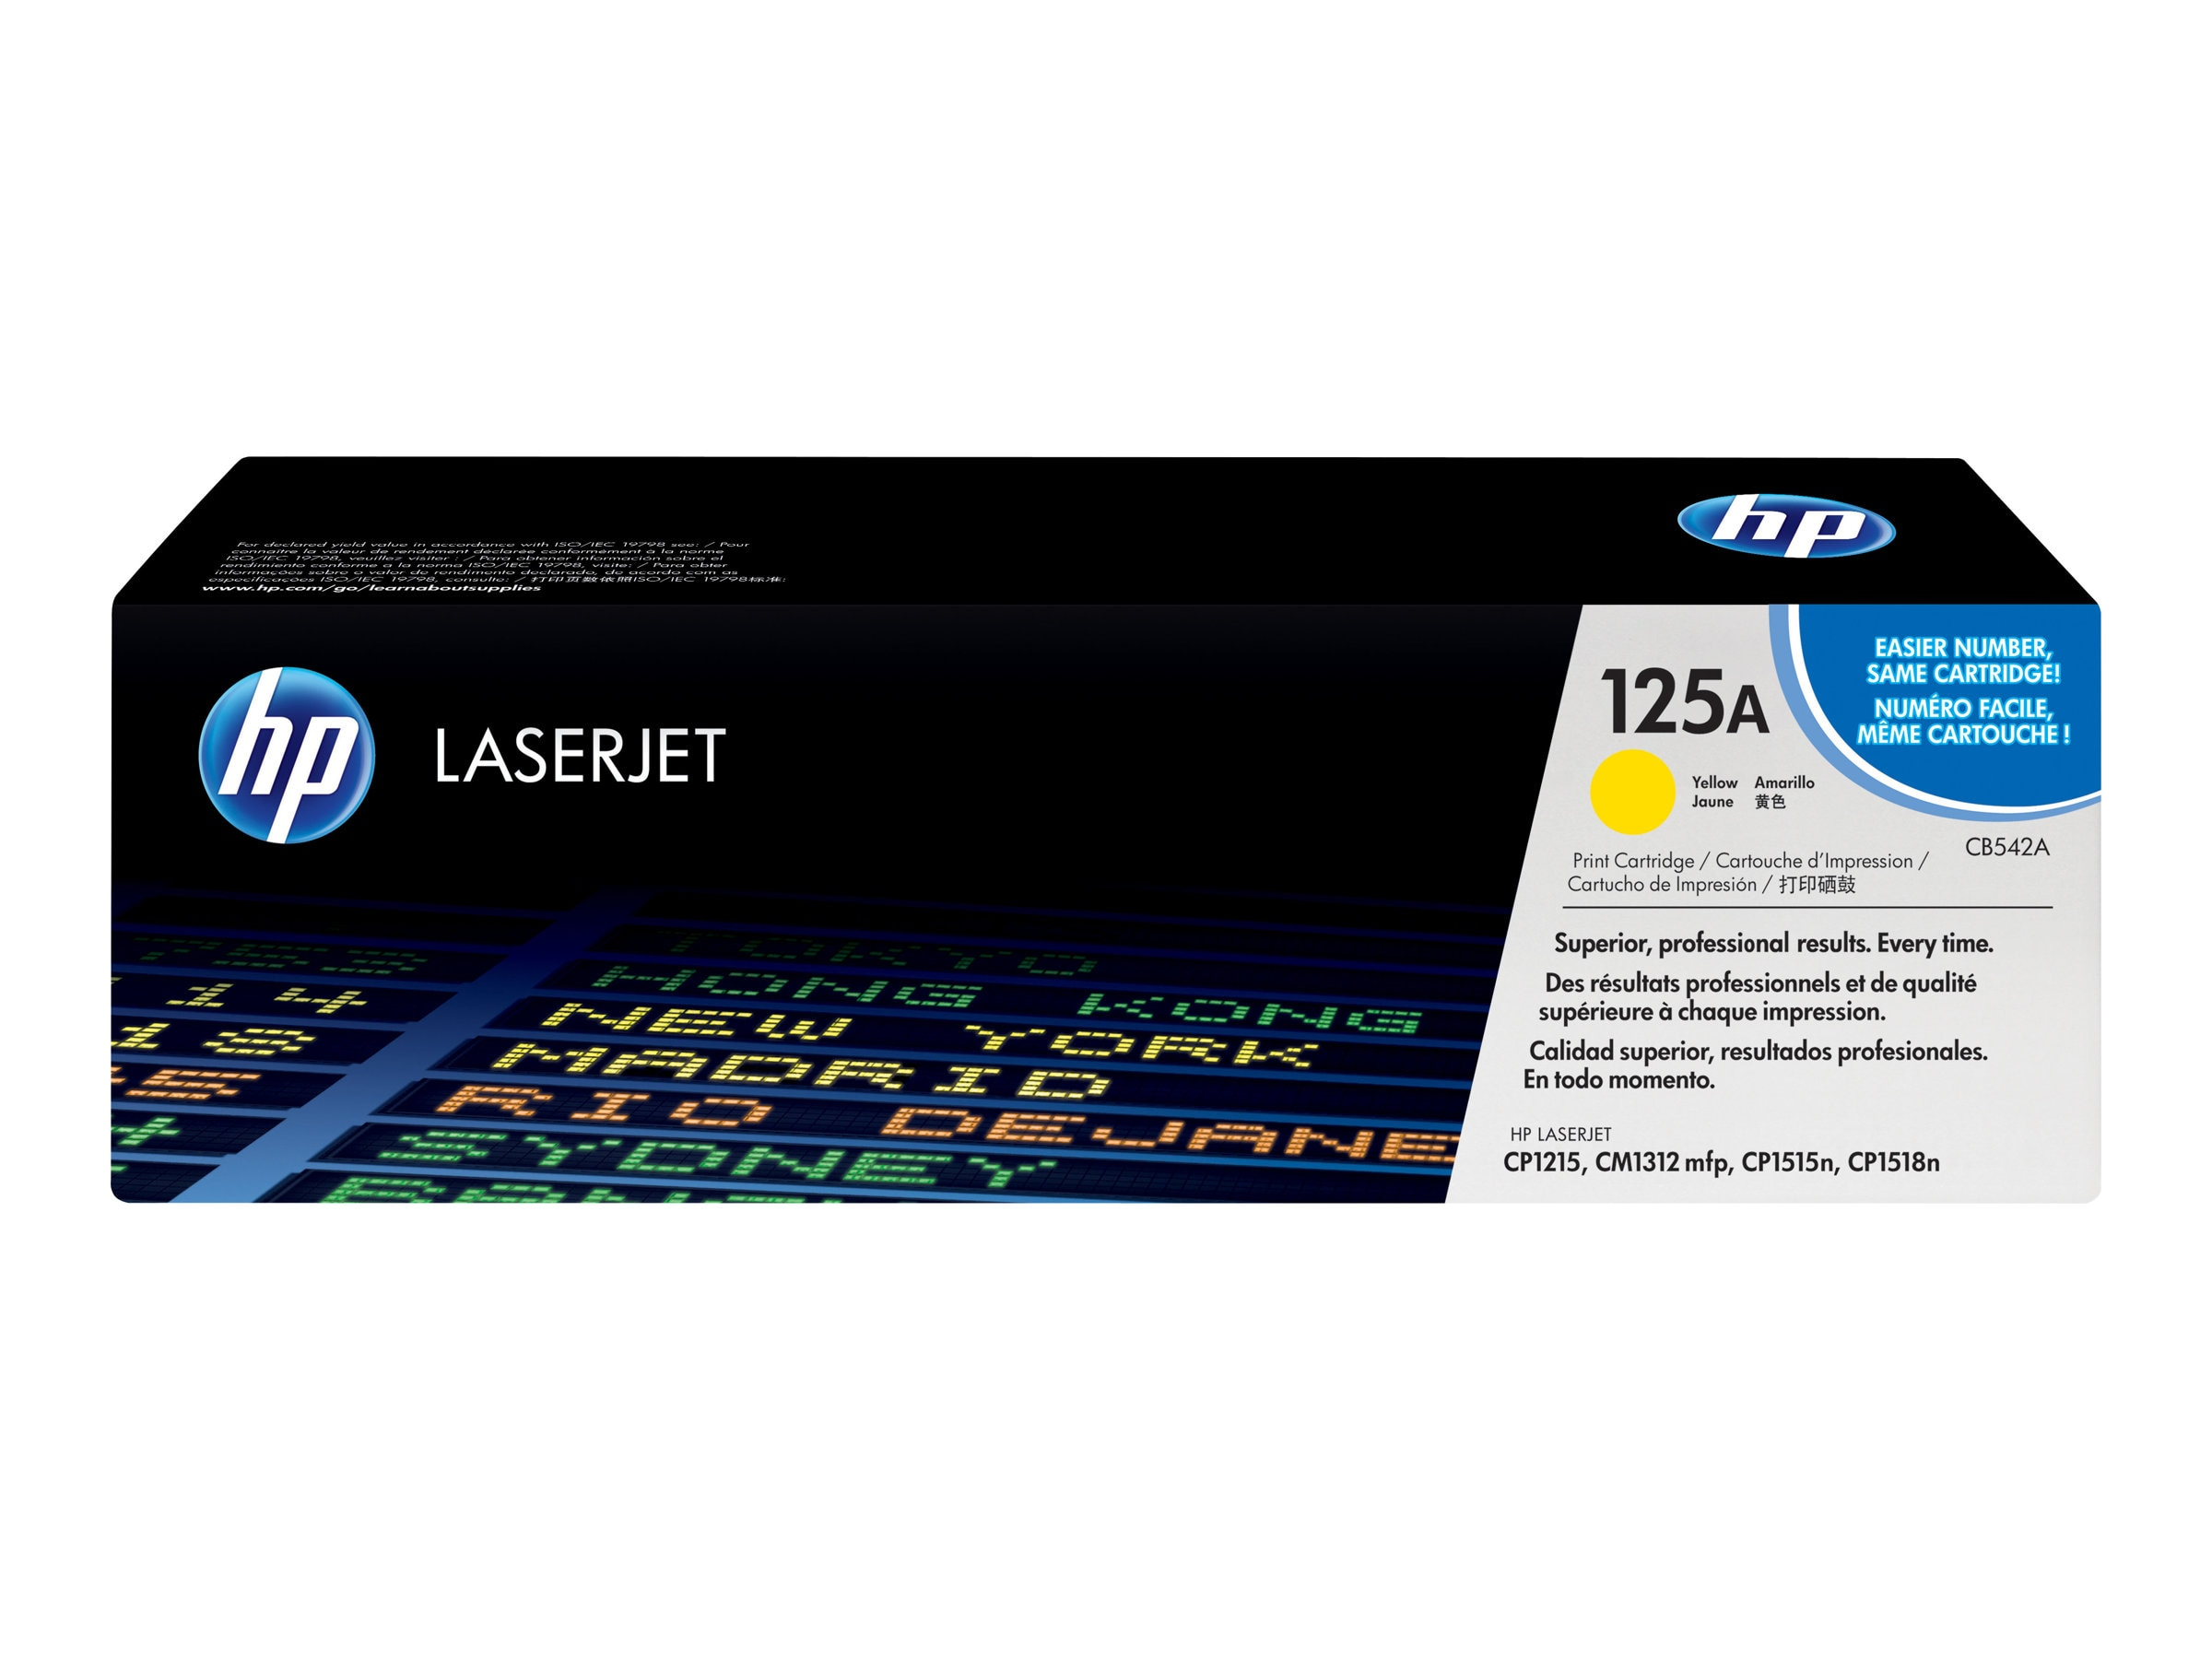 HP 125A (CB542A) Yellow Original LaserJet Toner Cartridge for HP Color LaserJet CP1215 & CP1515